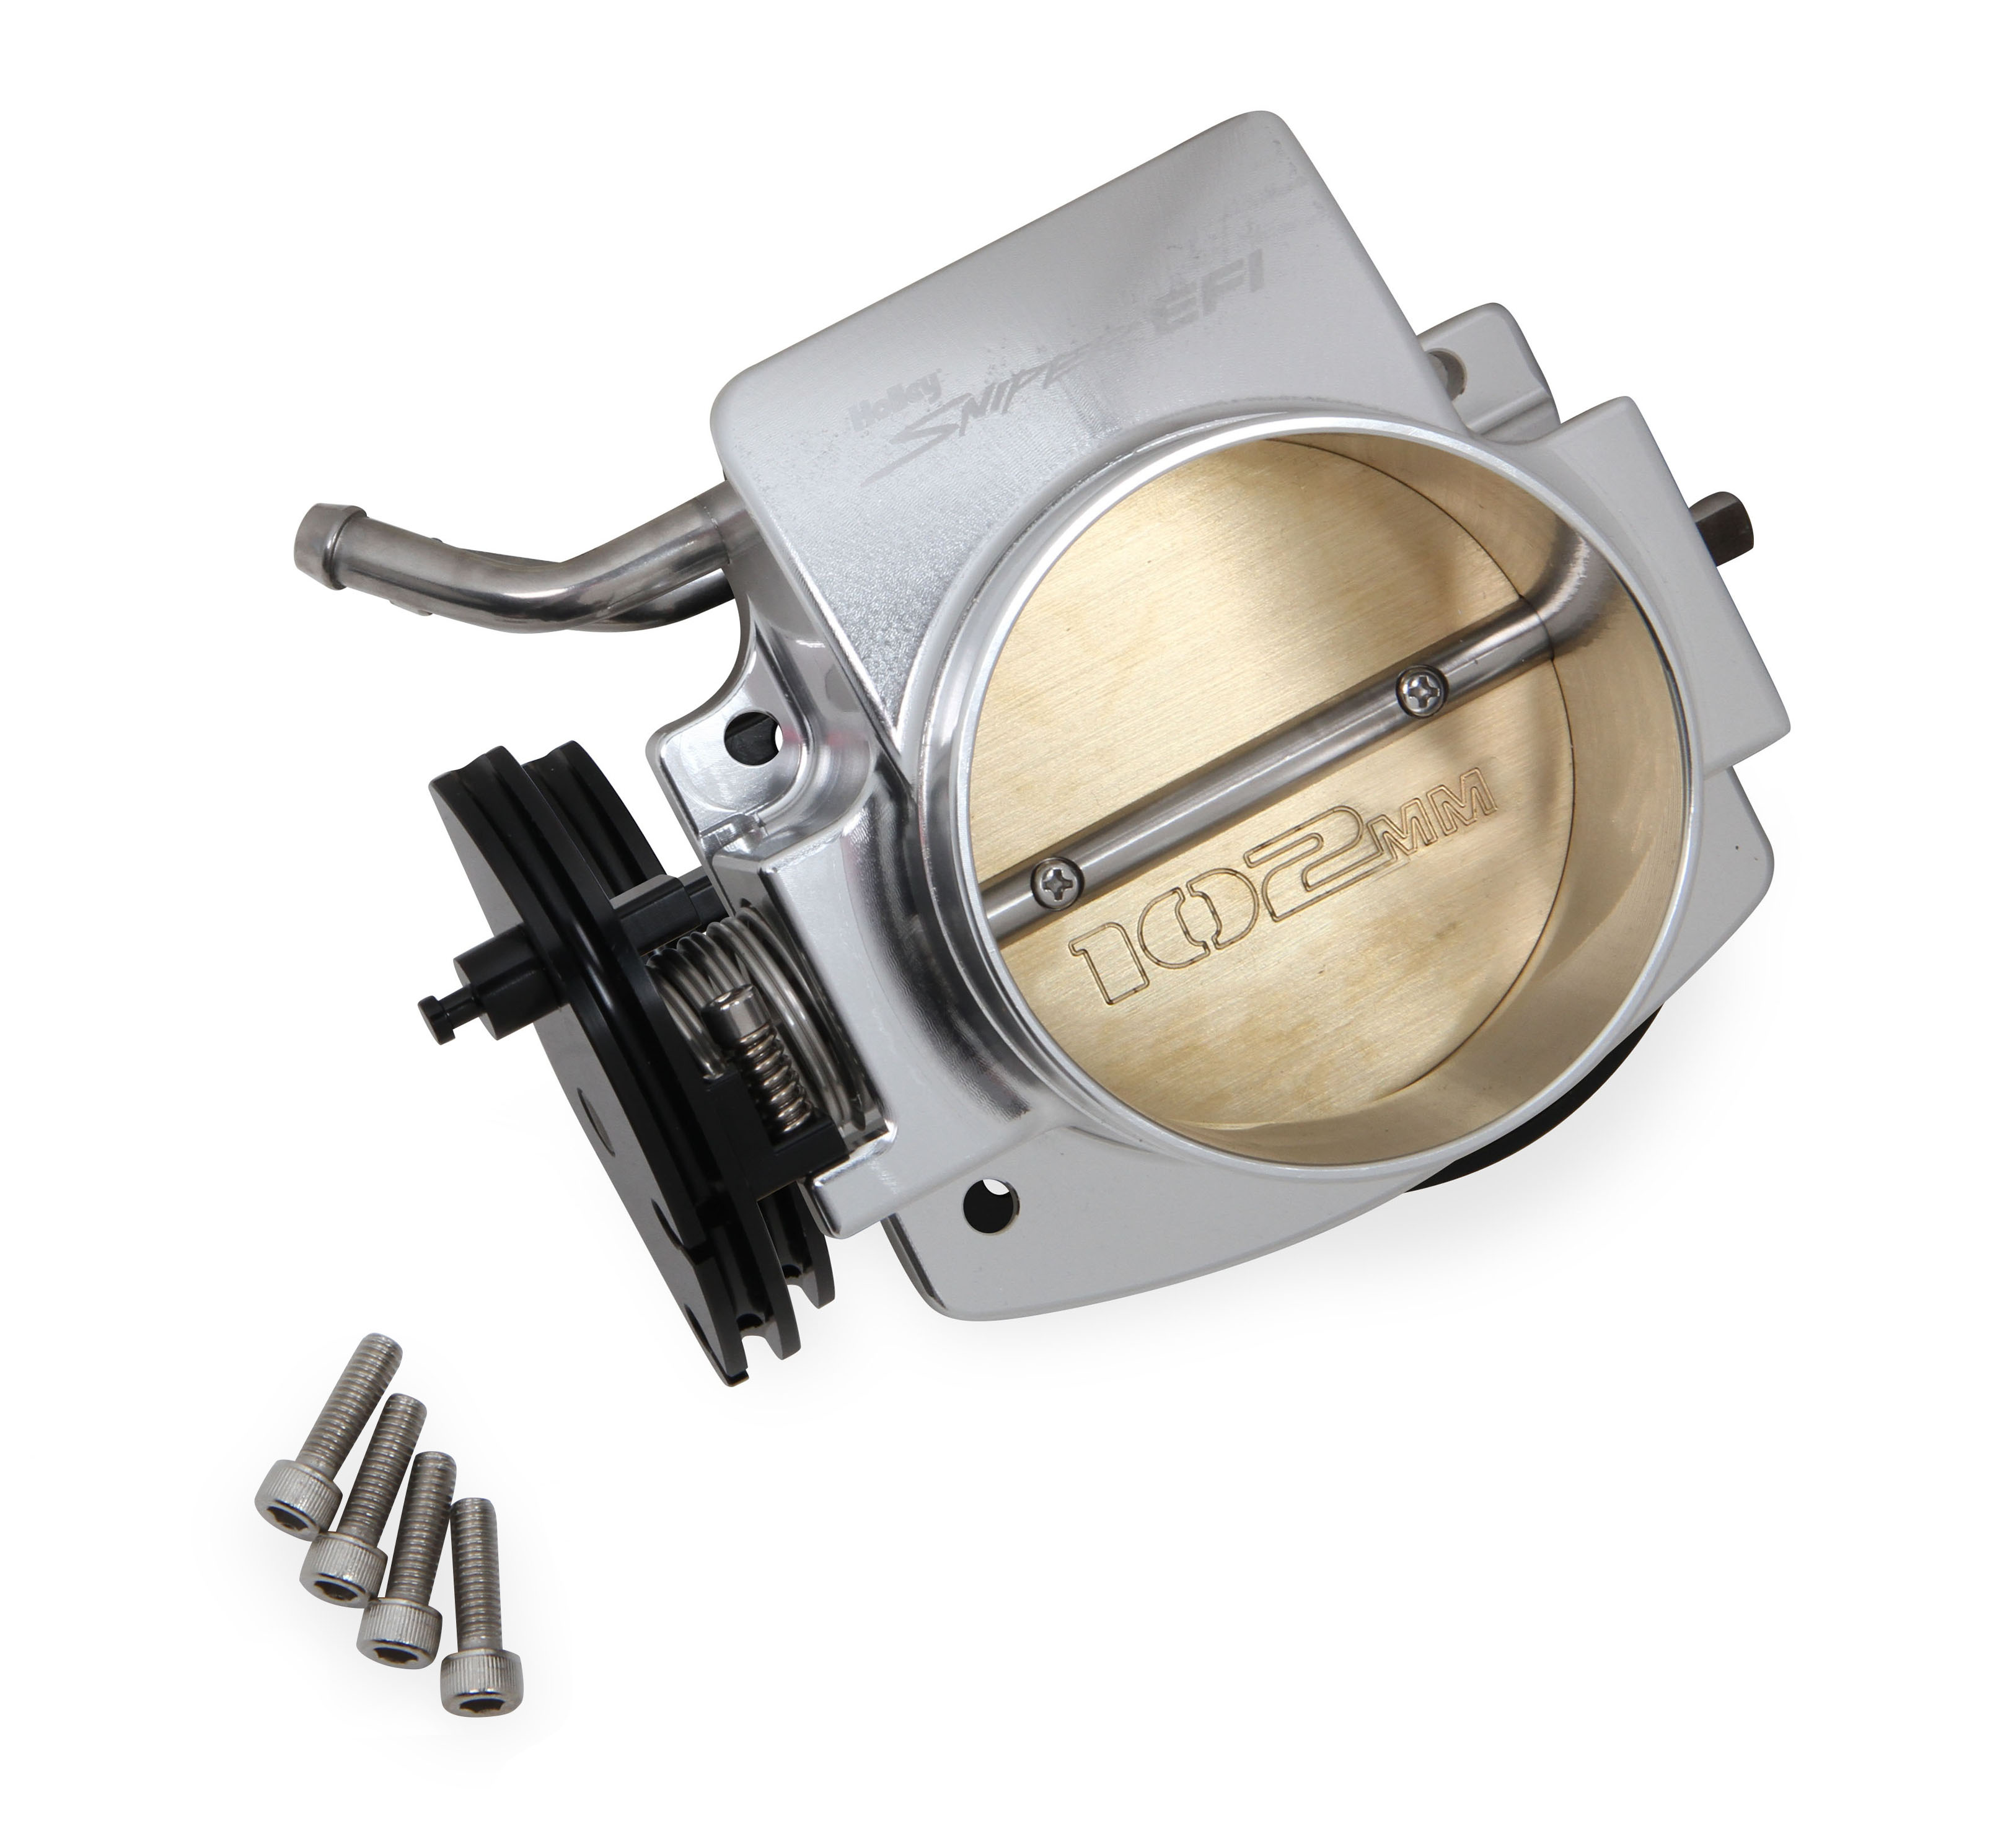 LS1 Holley 102mm Sniper EFI Throttle Body - Silver